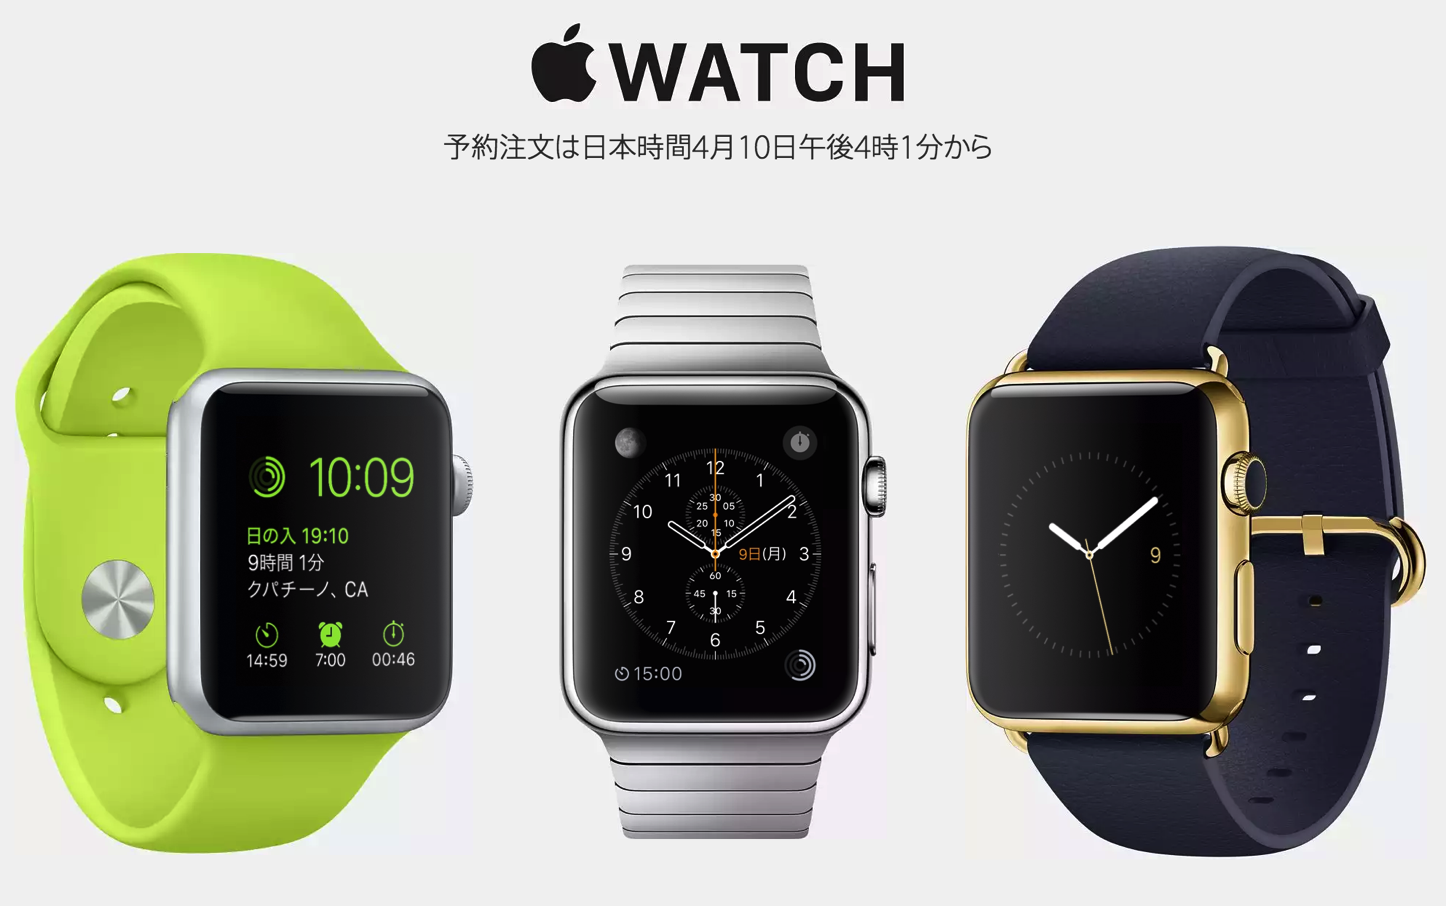 Apple Watch in Japan